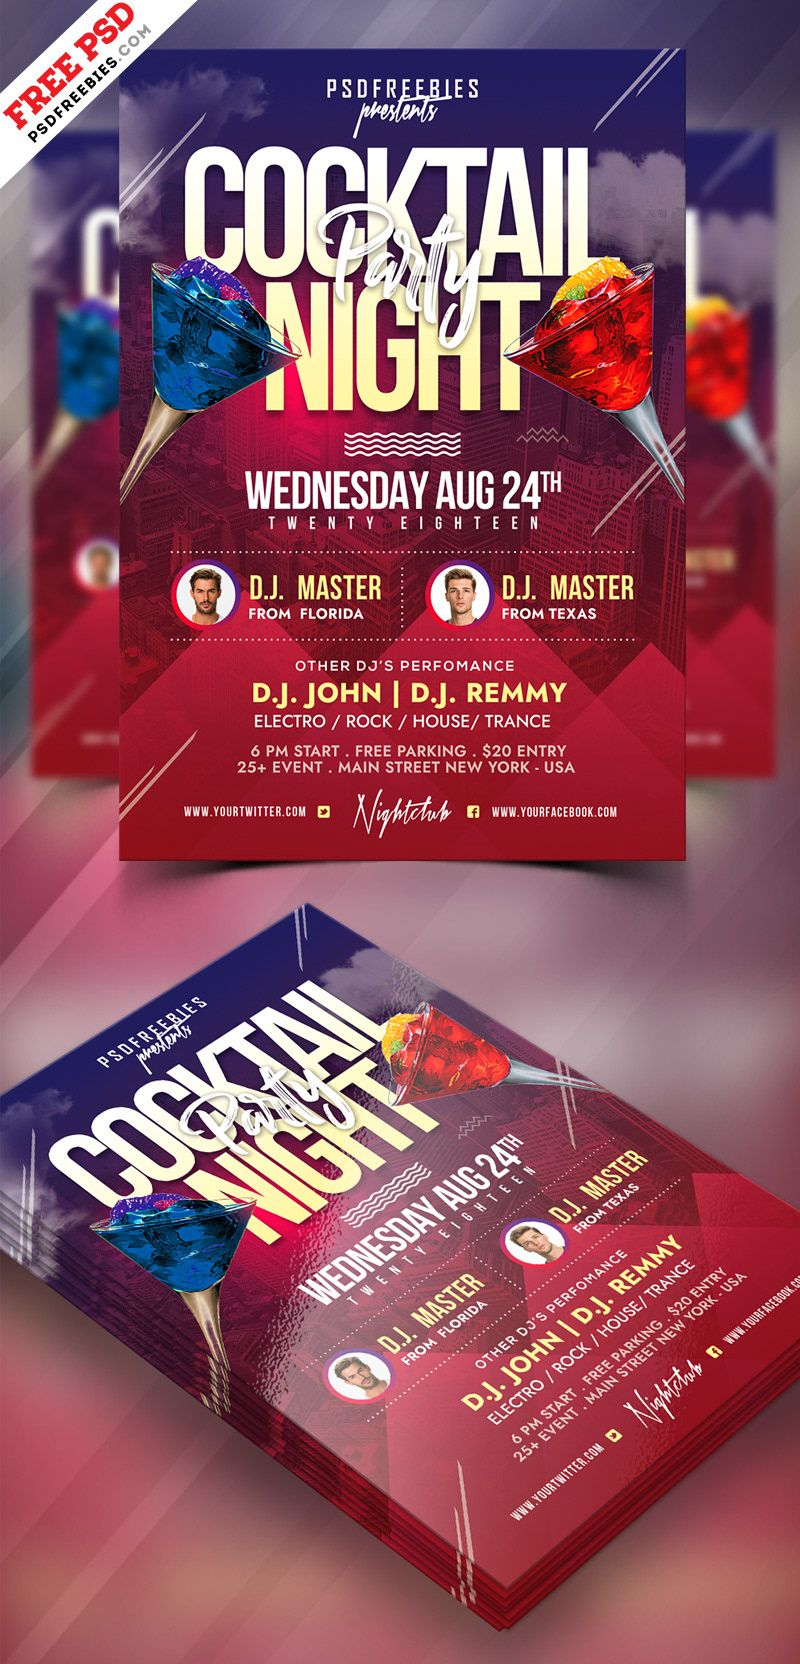 Cocktail Party Flyer PSD Template on Behance Party flyer